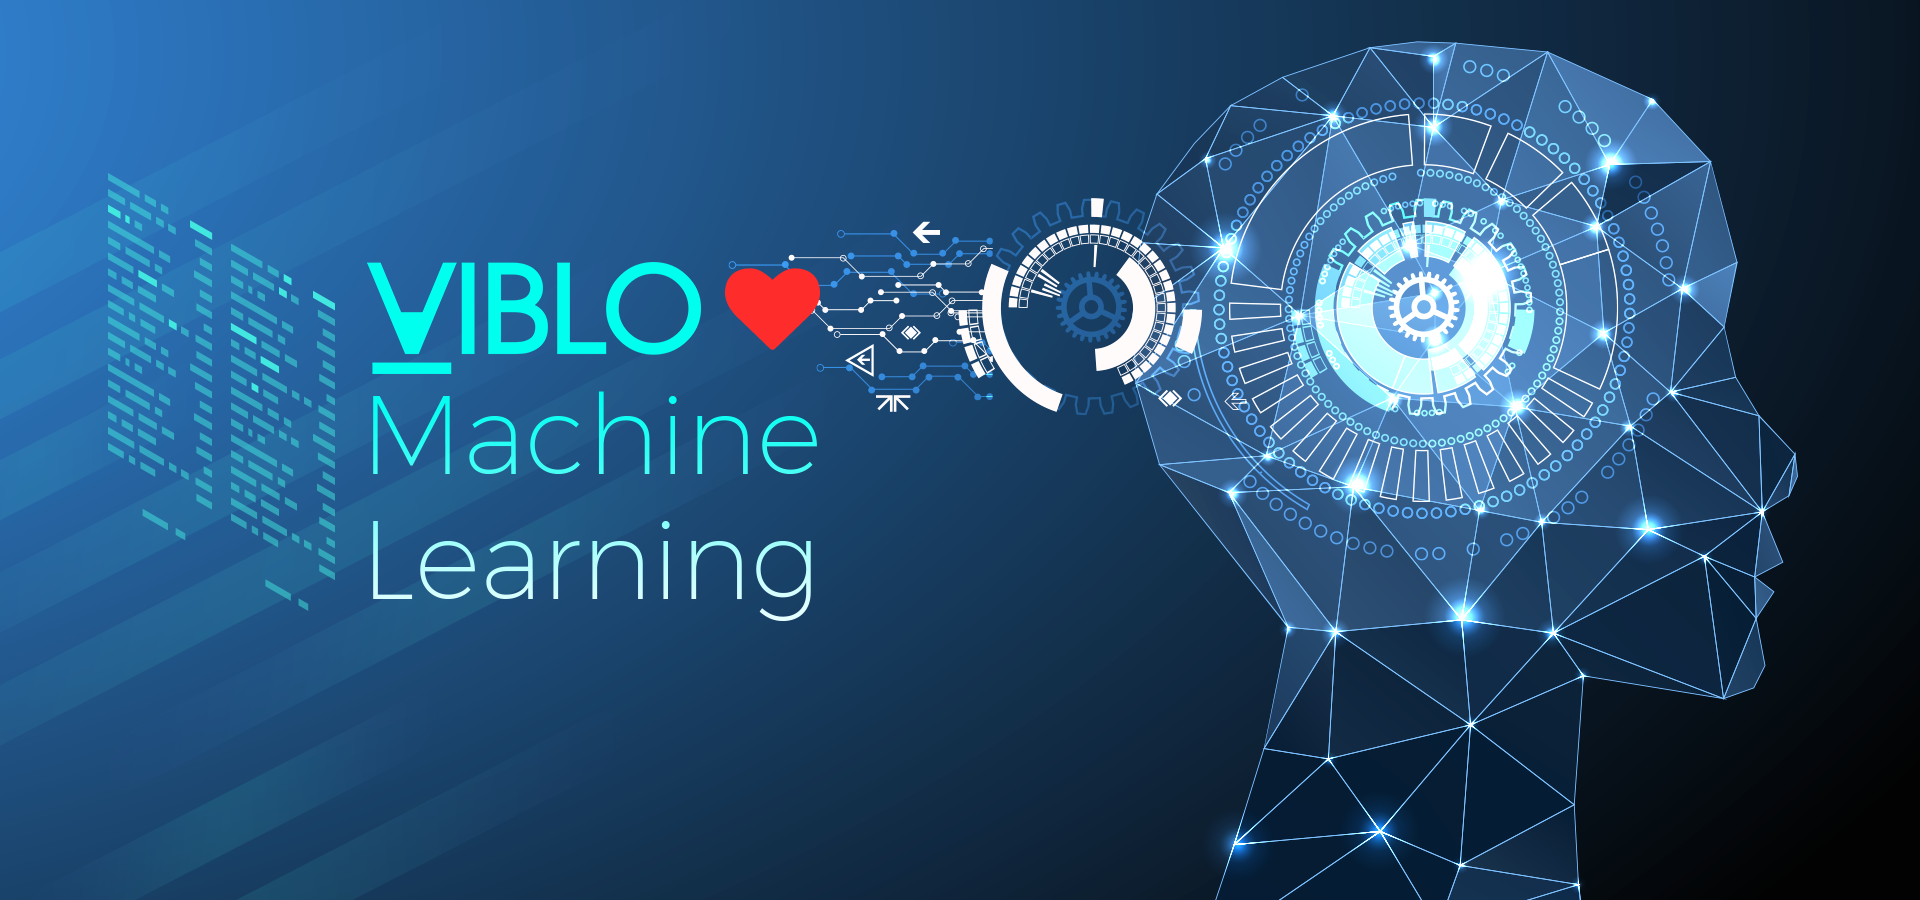 viblo-loves-machine-learning